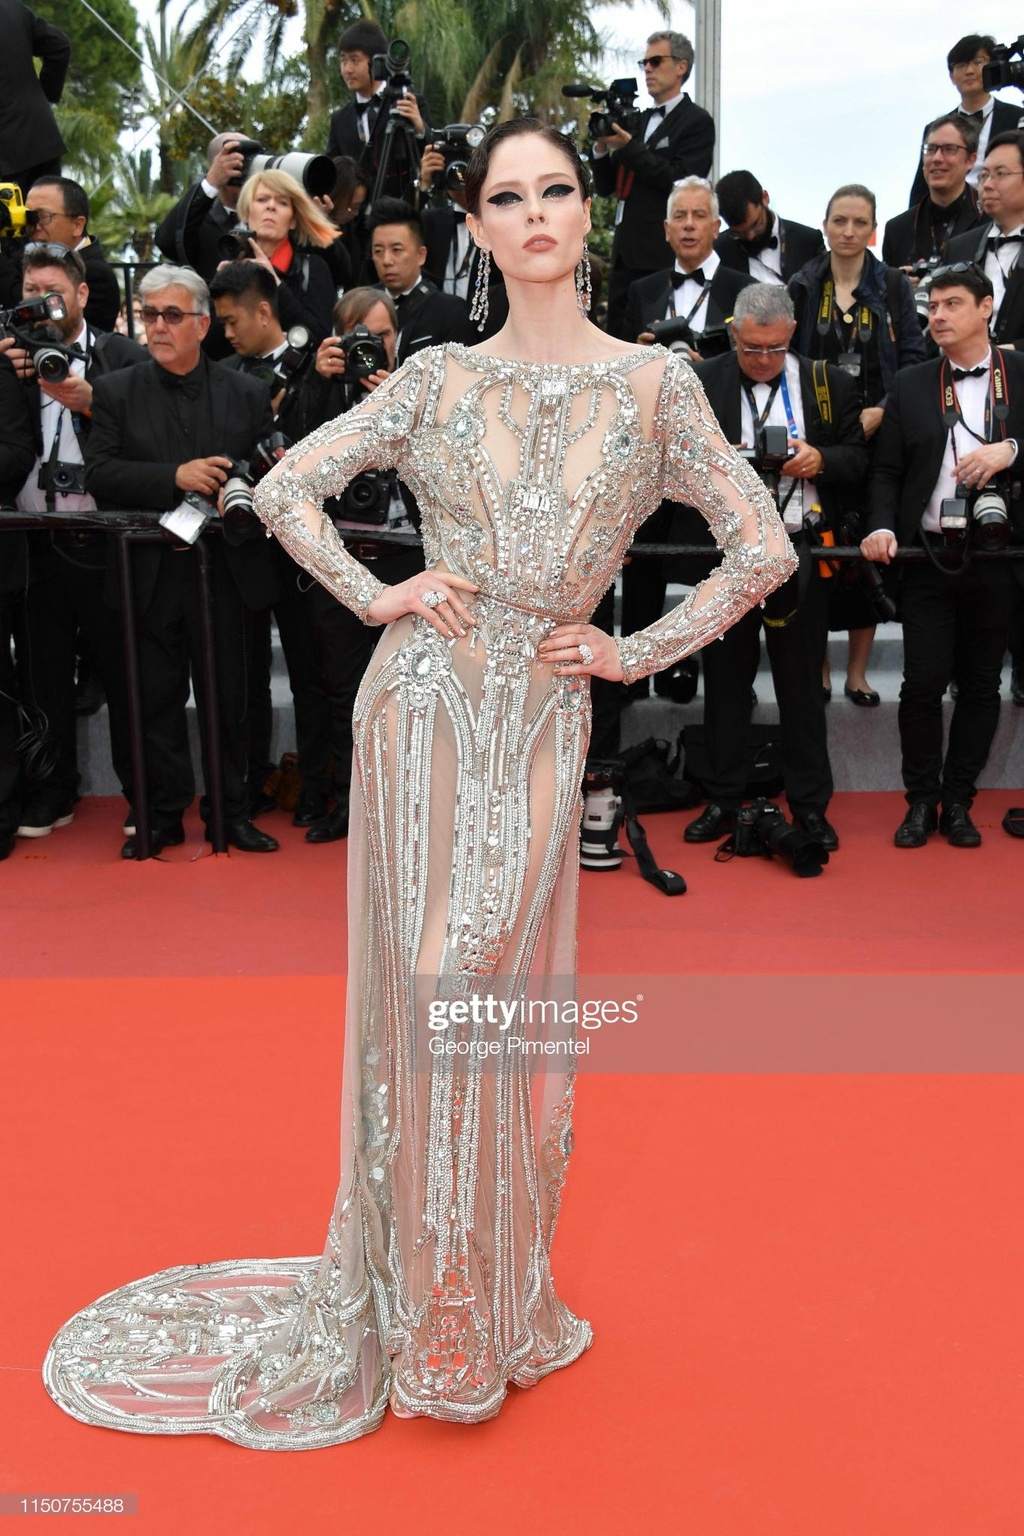 Lien hoan phim Cannes 2019 anh 3